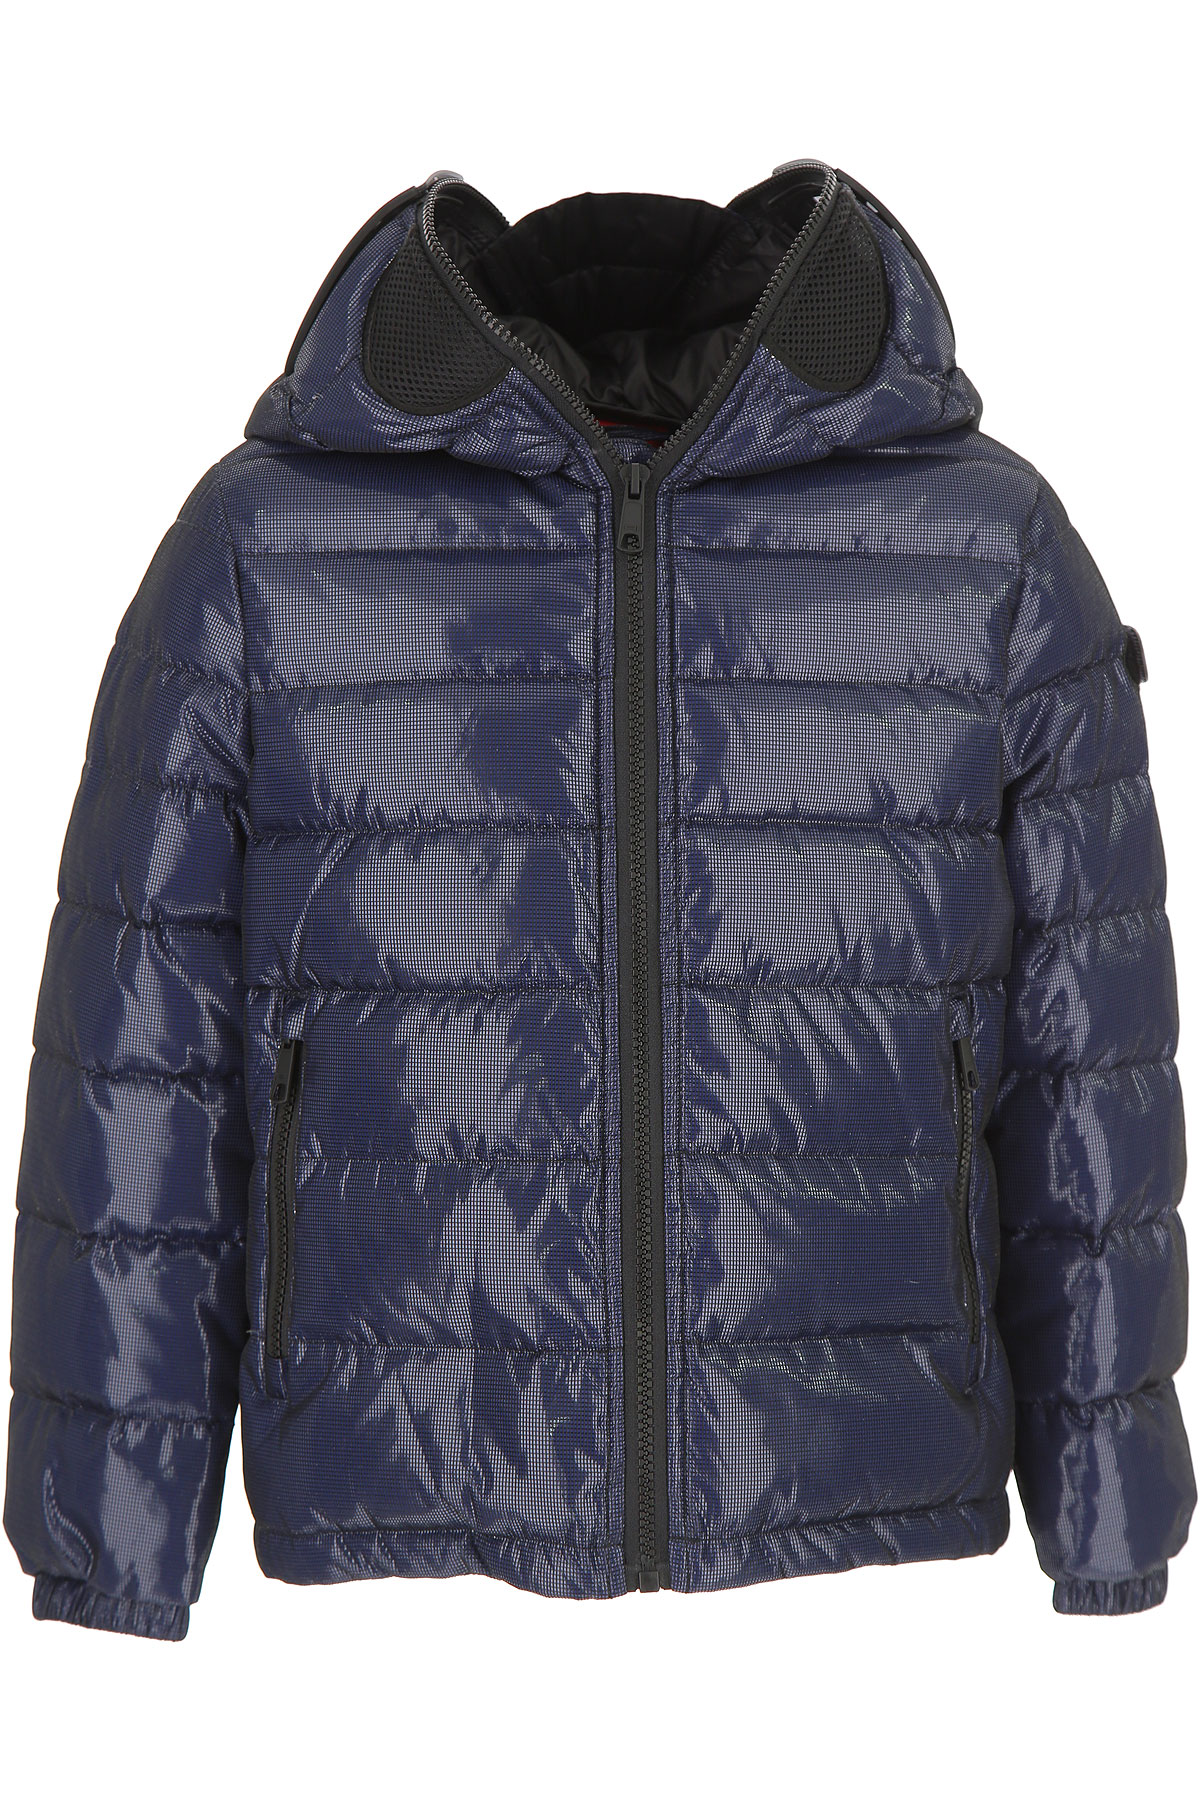 Image of Ai Riders On The Storm Girls Down Jacket for Kids, Puffer Ski Jacket, Navy Blue, polyester, 2017, 10Y 8Y